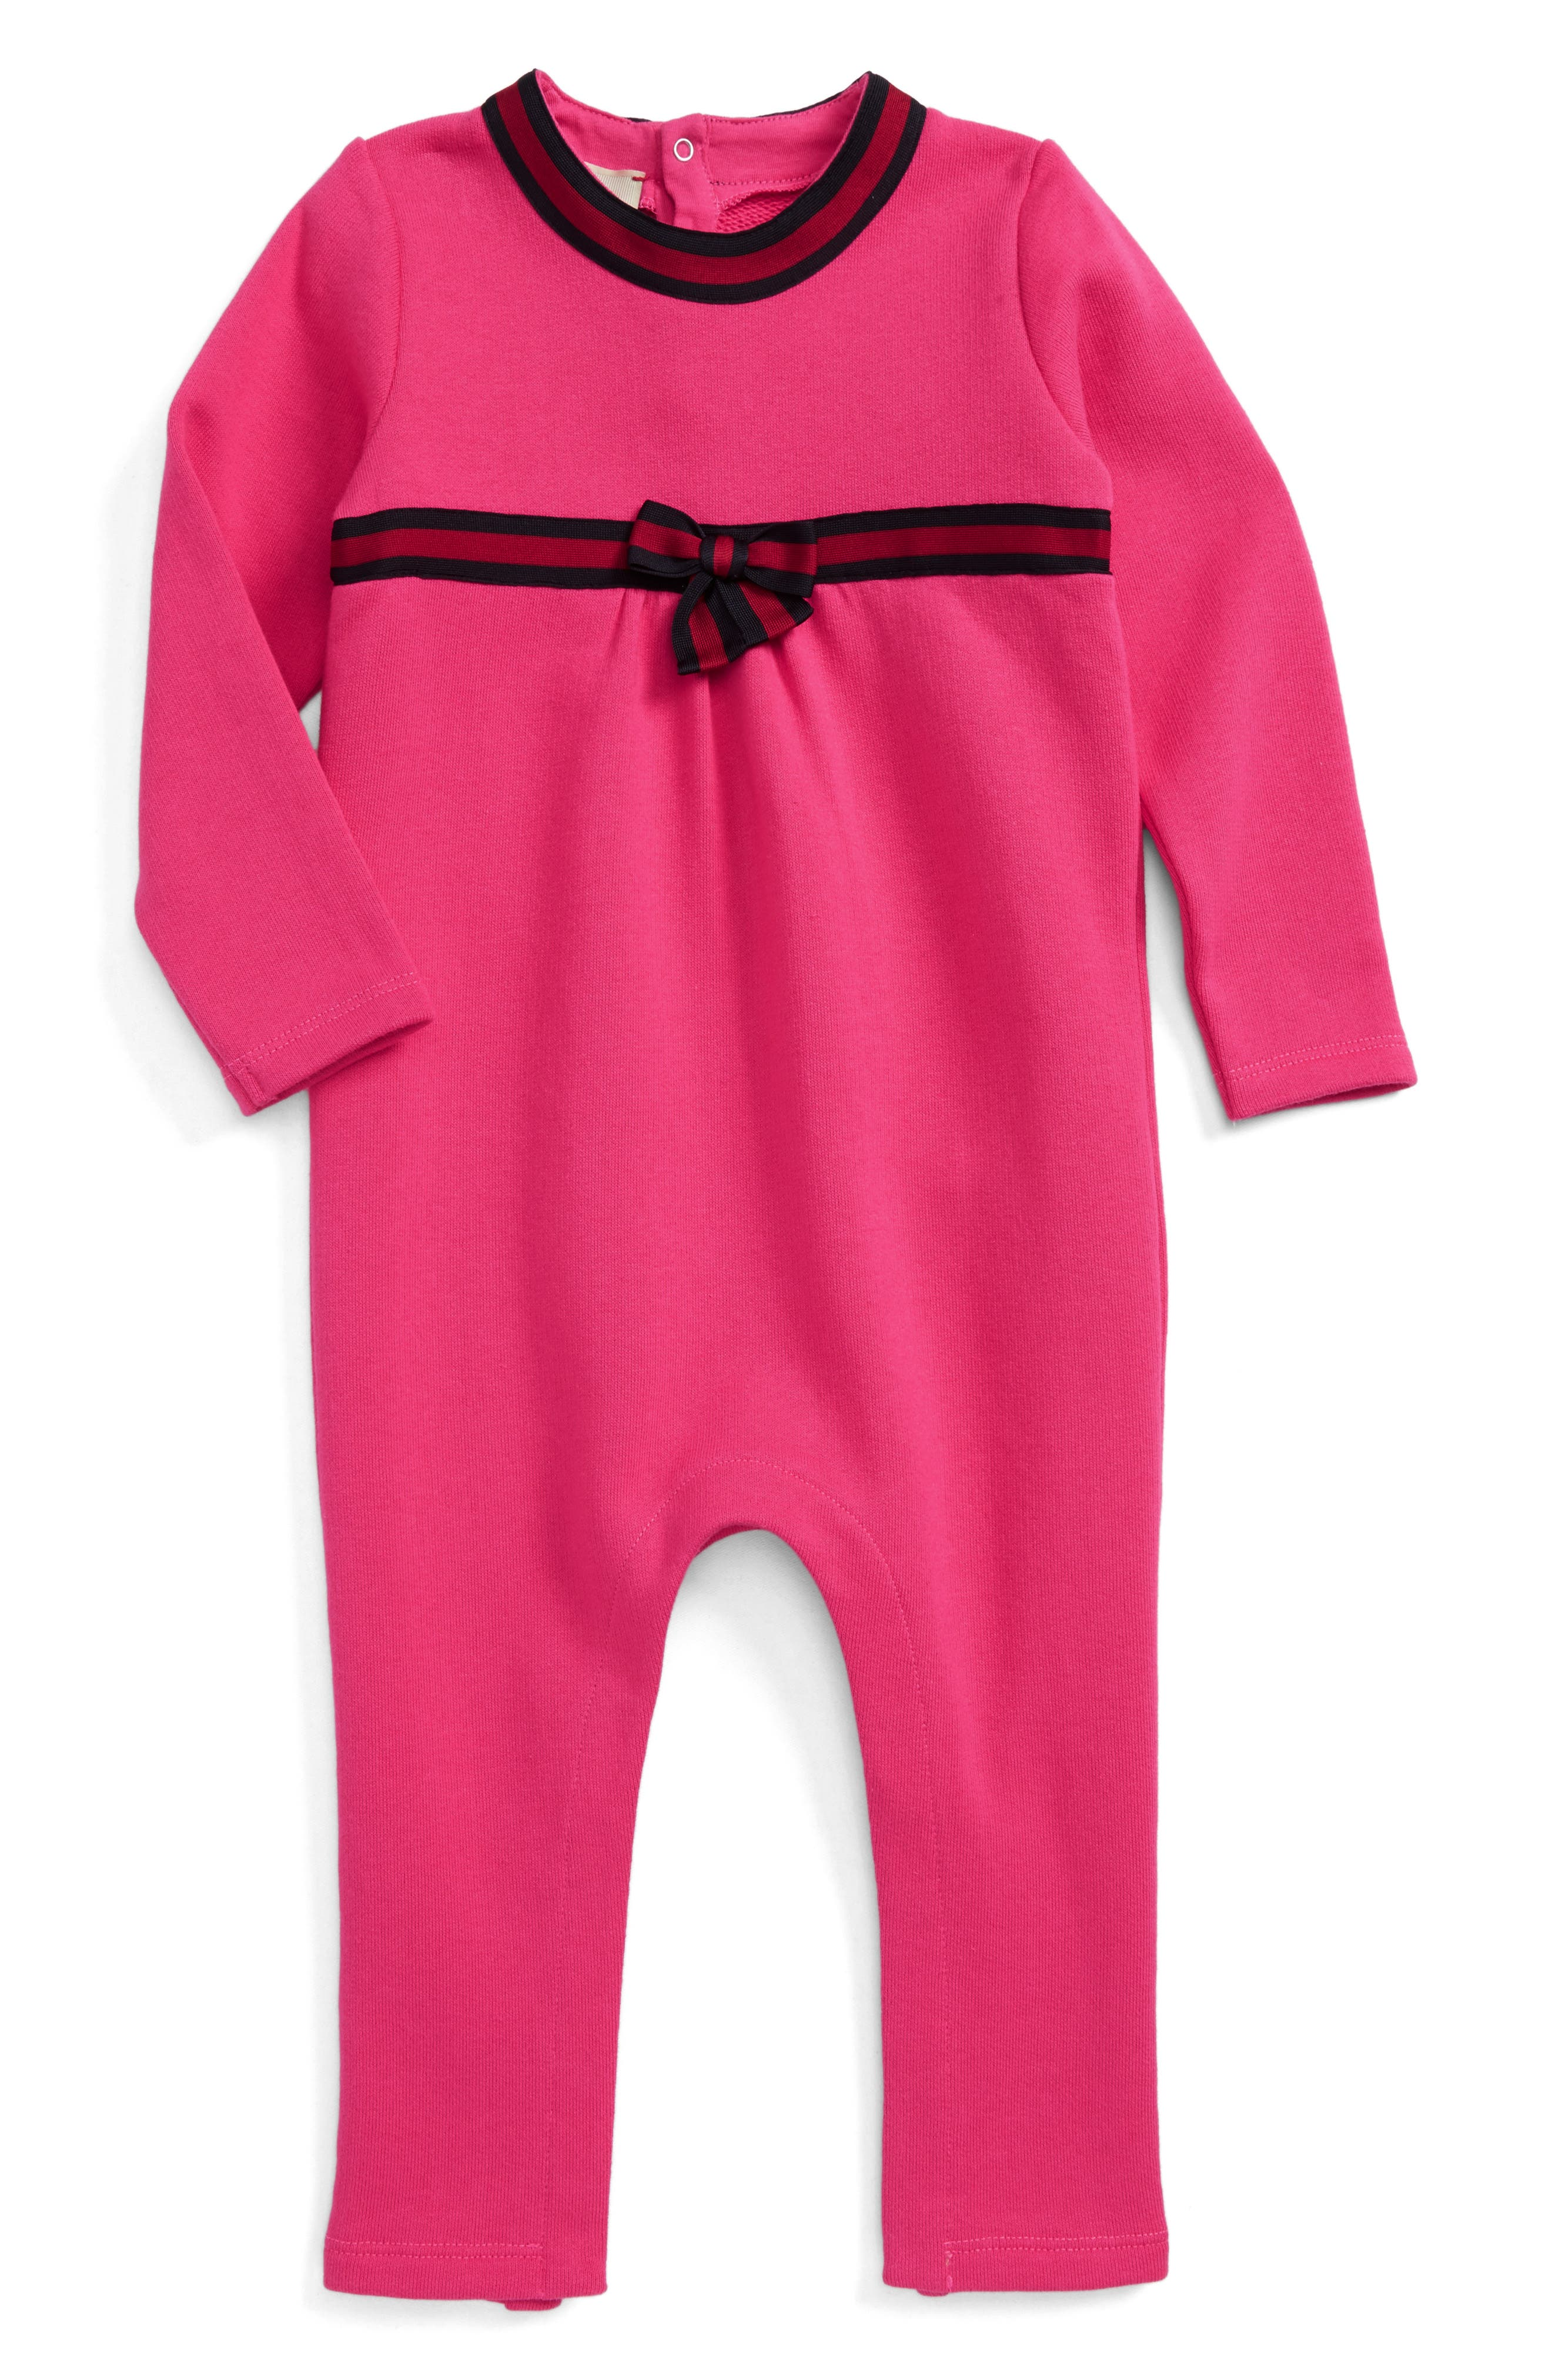 Alternate Image 1 Selected - Gucci Knit Romper (Baby Girls)